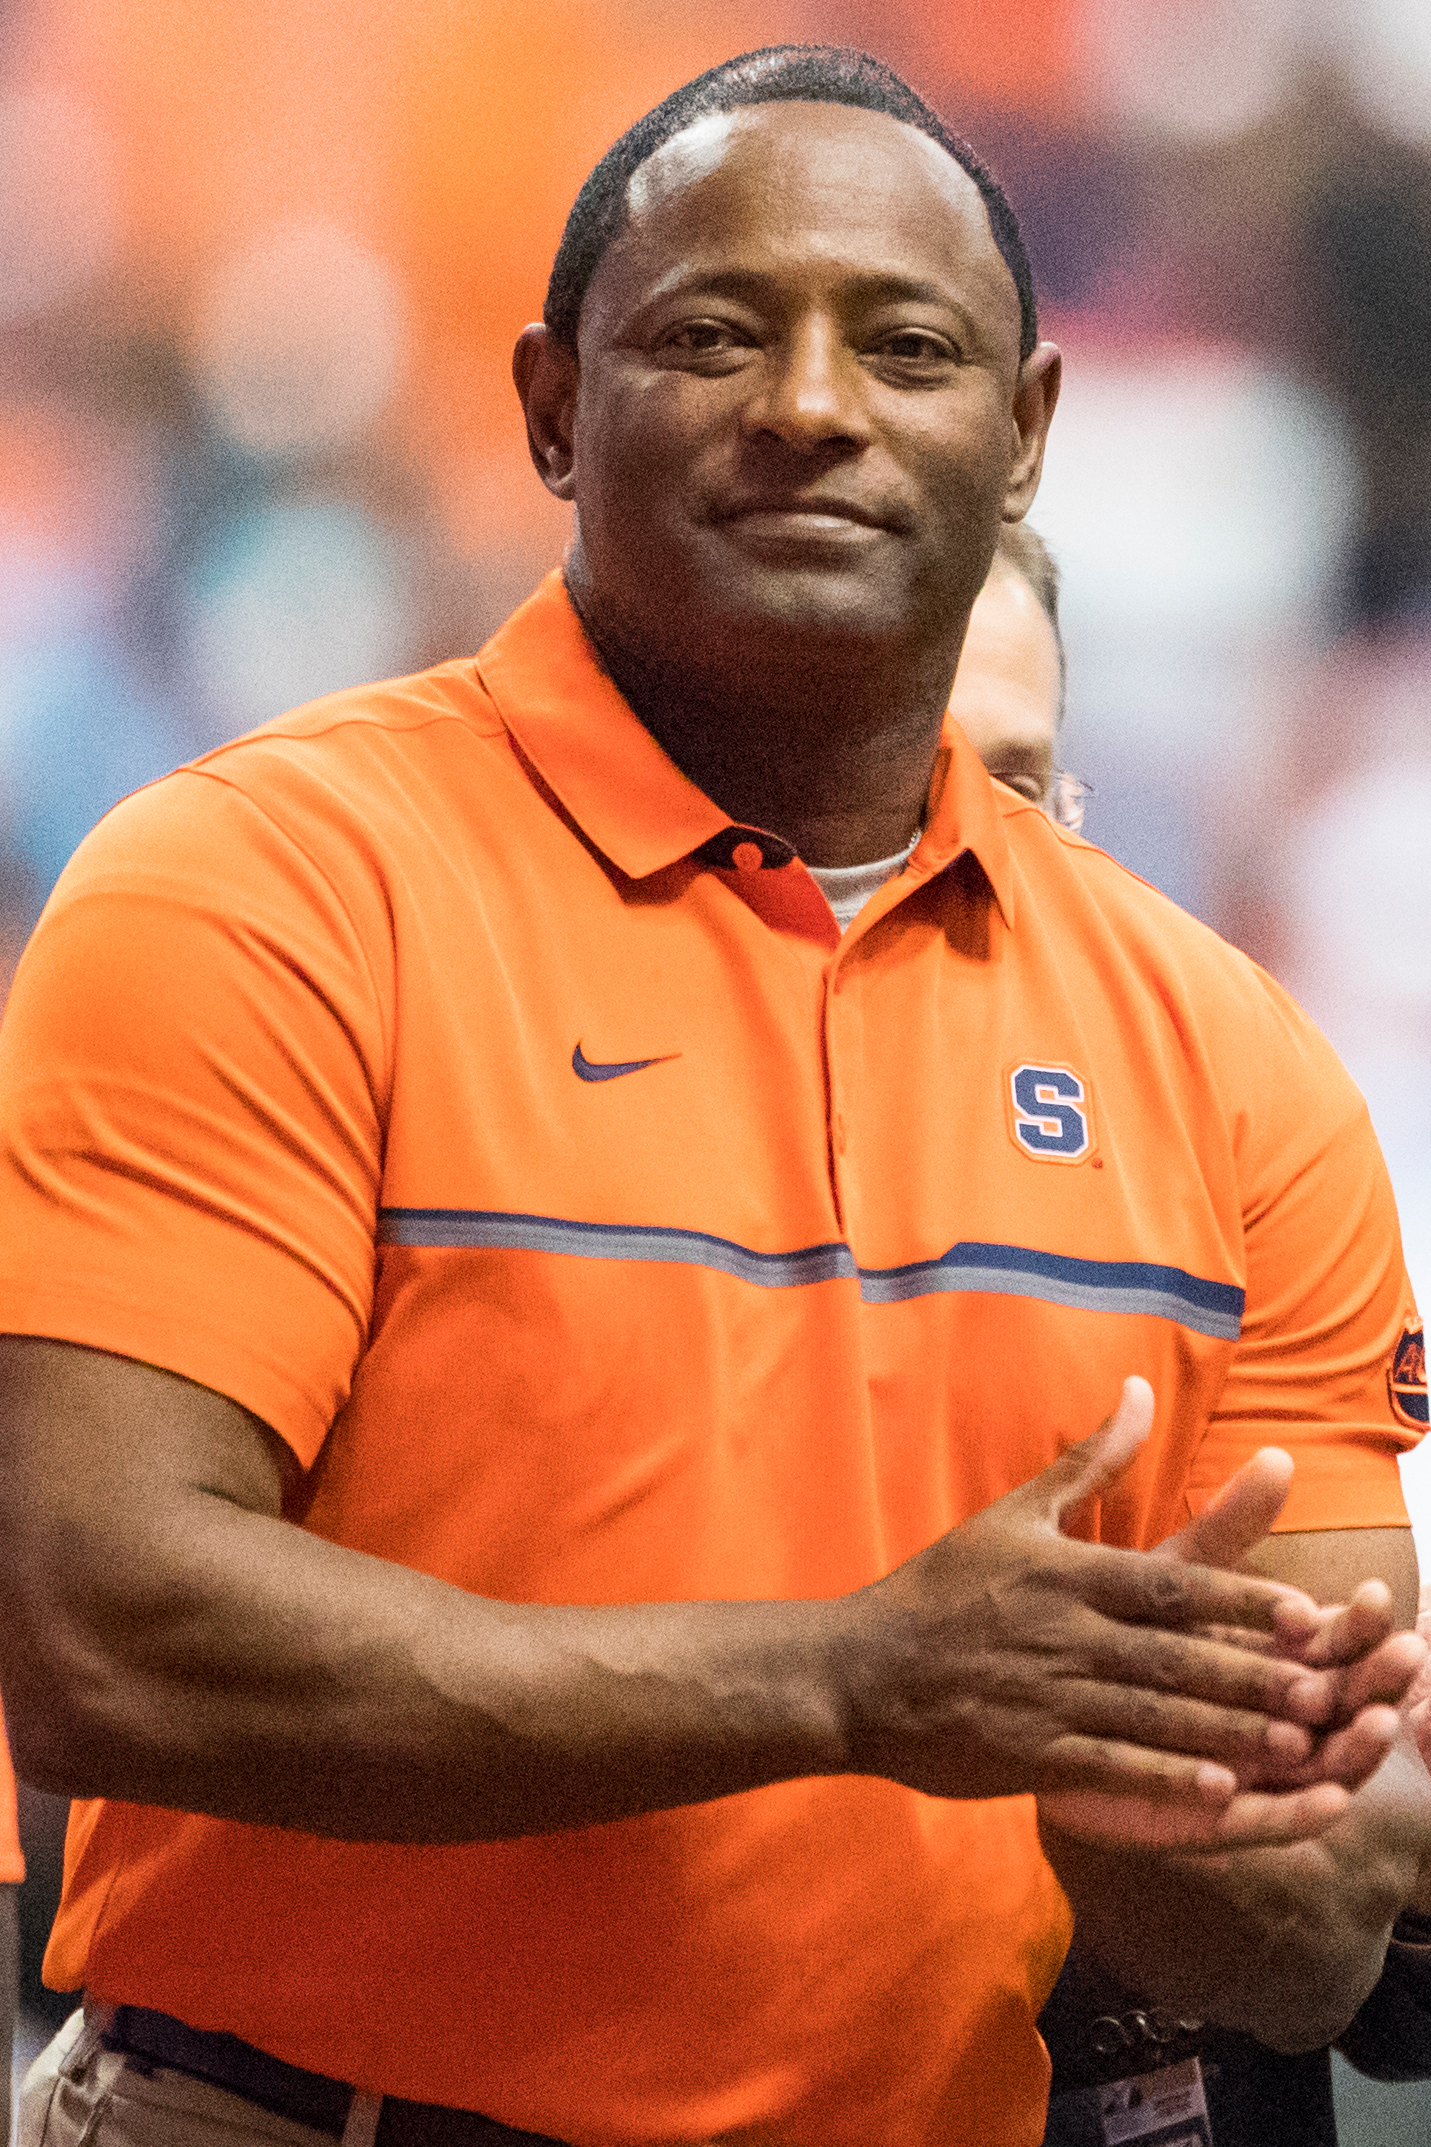 Head coach Dino Babers of the Syracuse Orange congratulates senior players before the game against the Florida State Seminoles on November 19, 2016 at The Carrier Dome in Syracuse, New York.